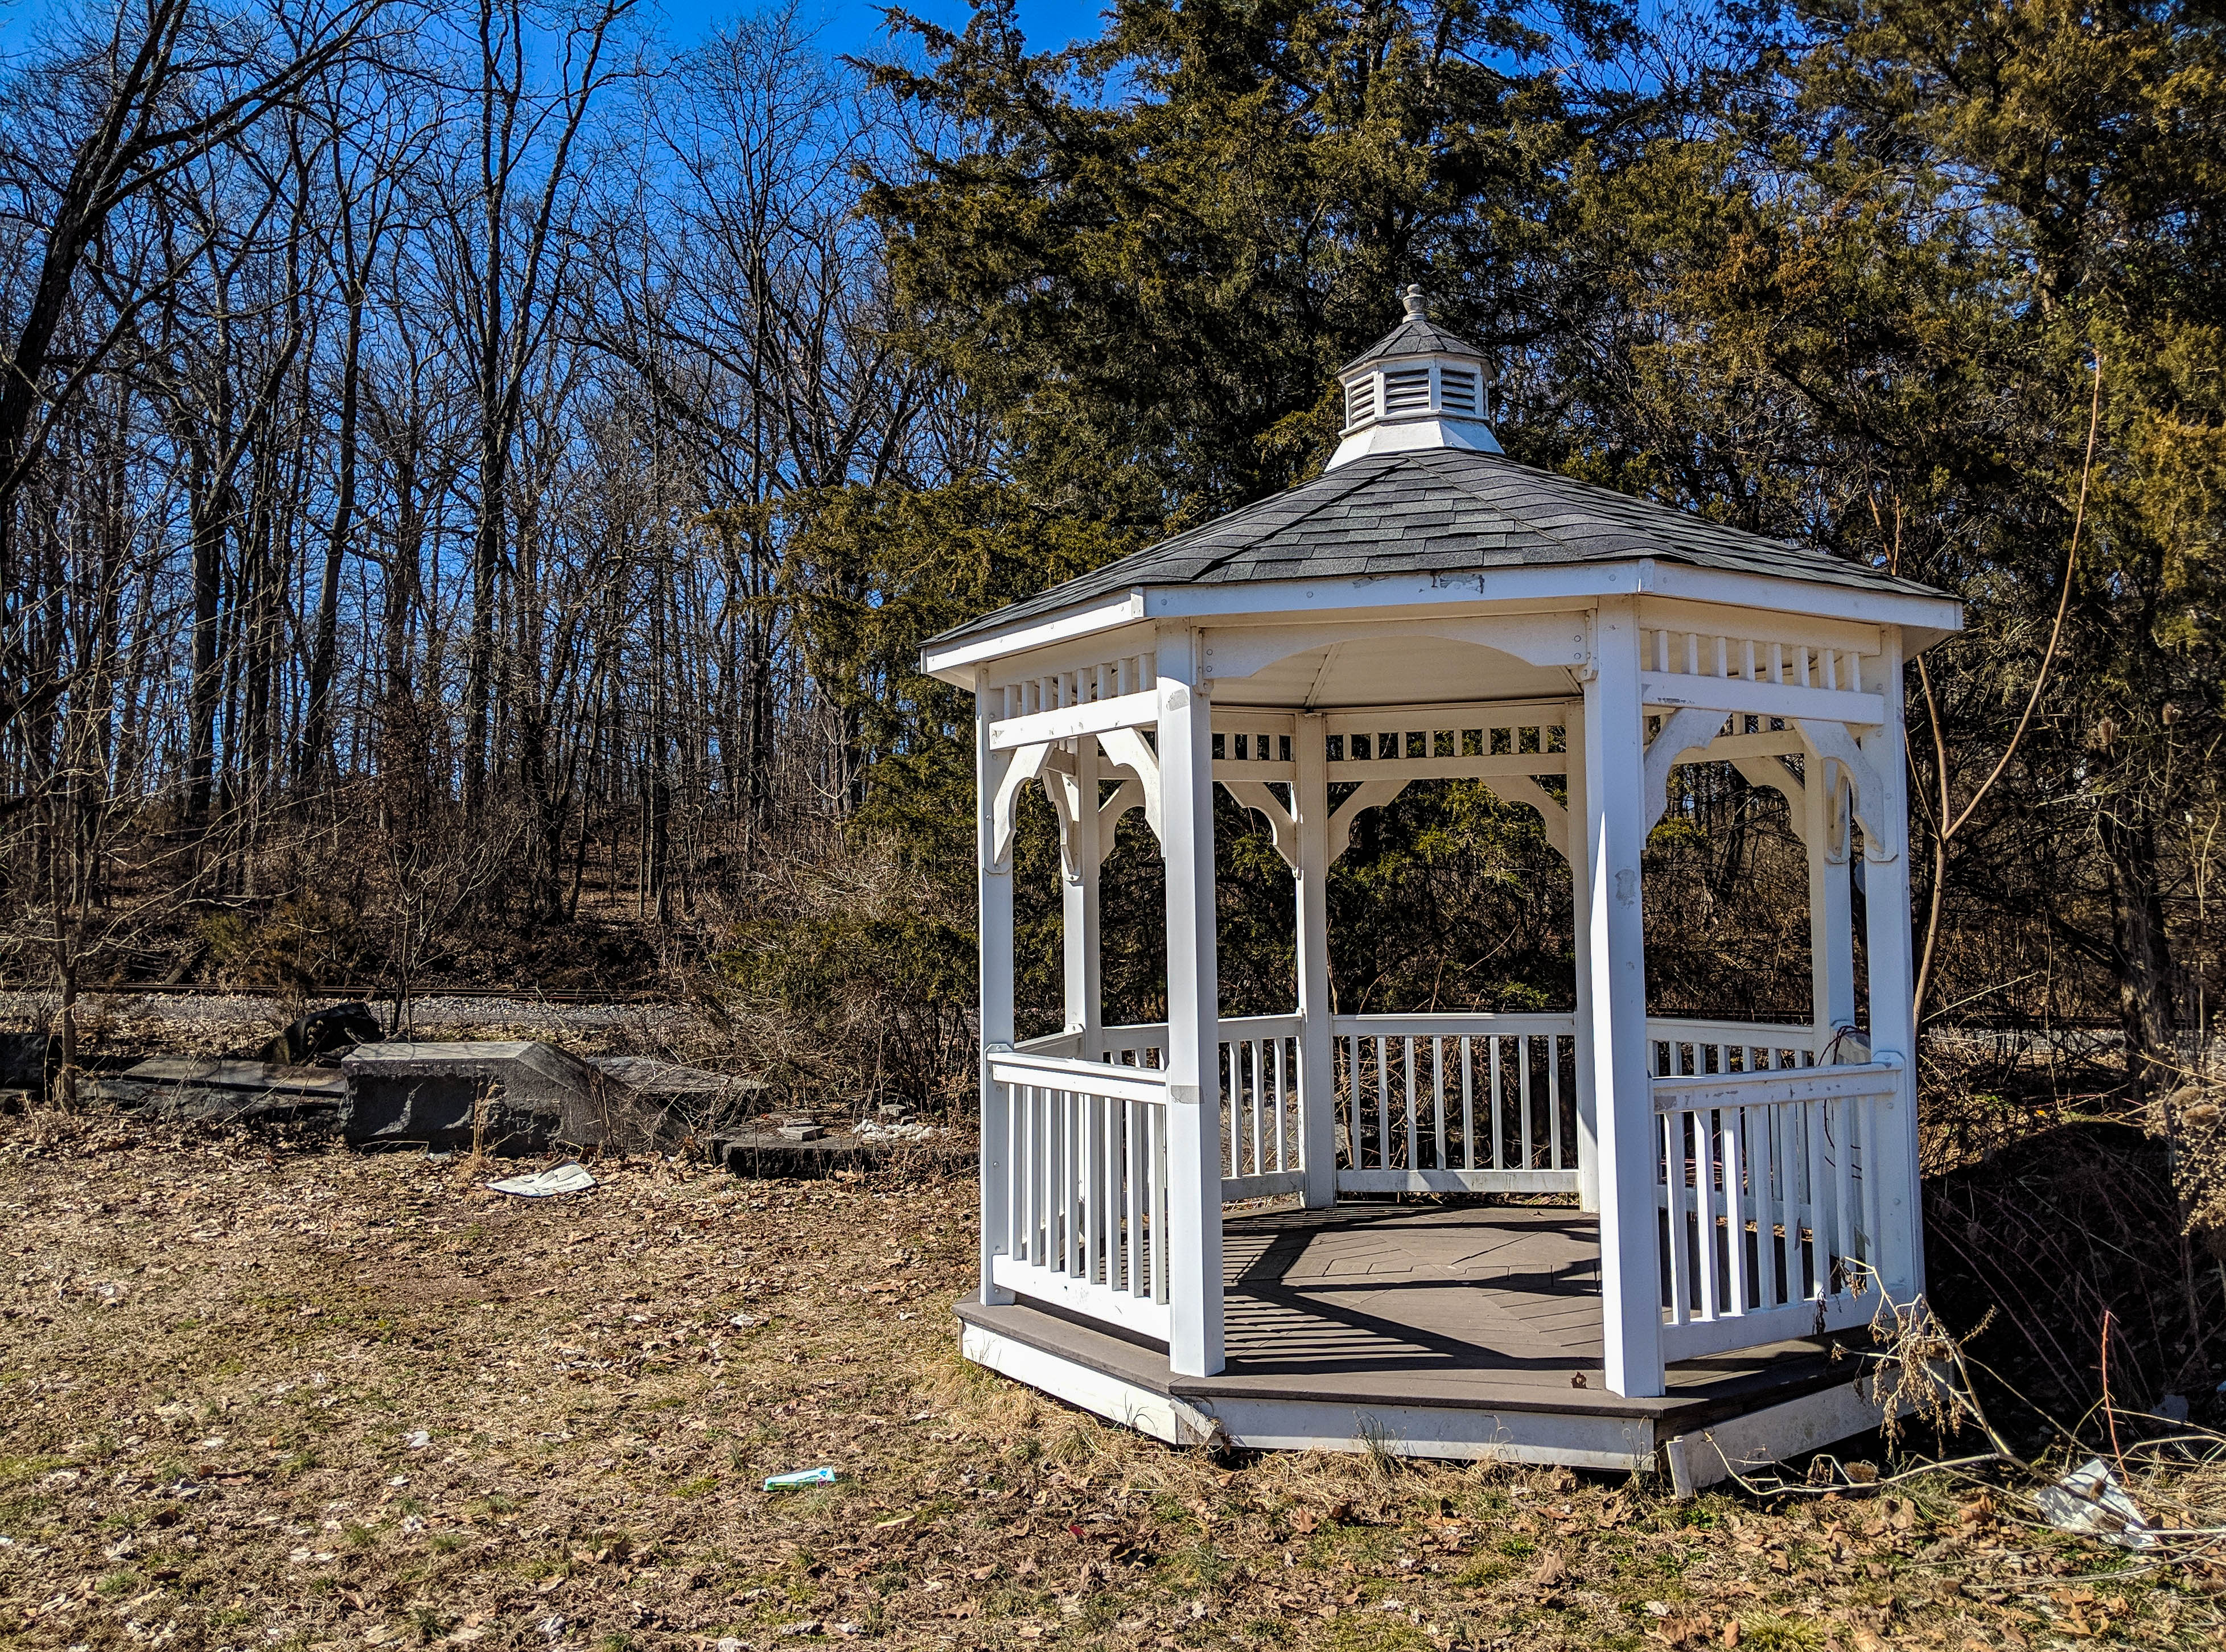 This gazebo could once be found in the center of campus (Photo Mary Frasier/The Gettysburgian)